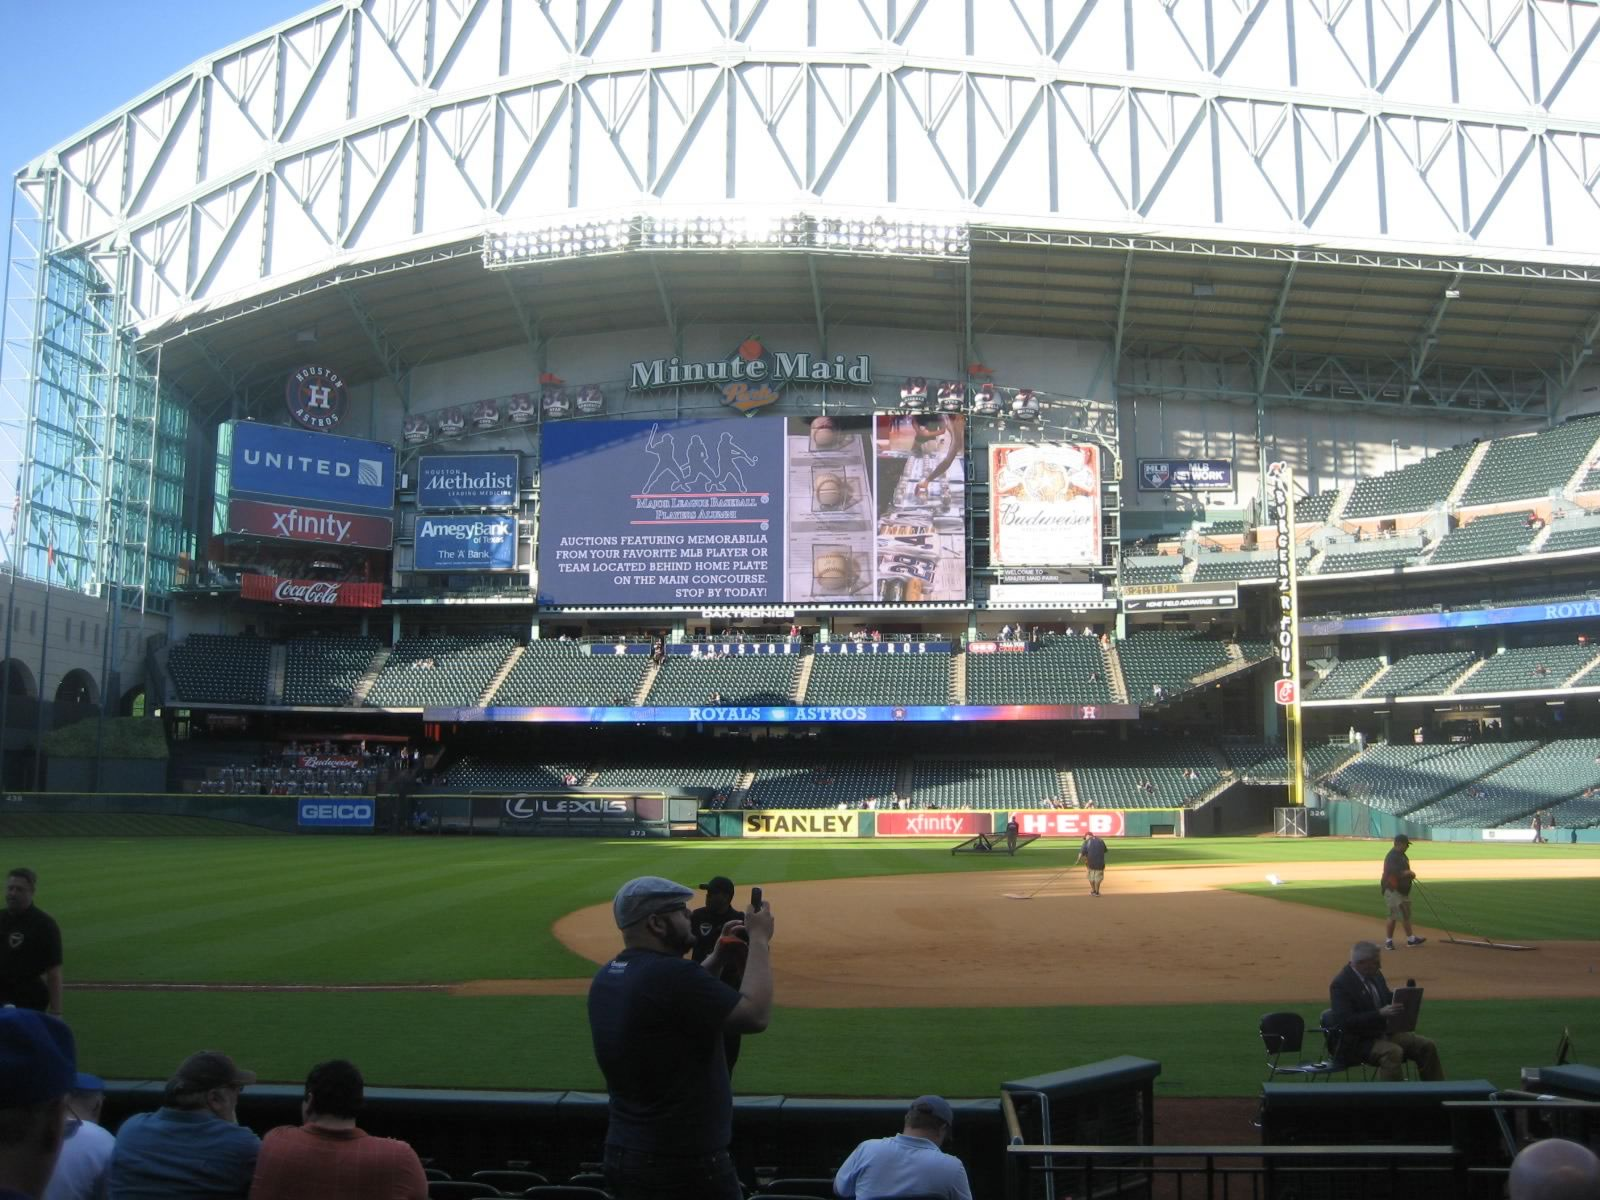 Seat View for Minute Maid Park Section 122, Row 11, Seat 15